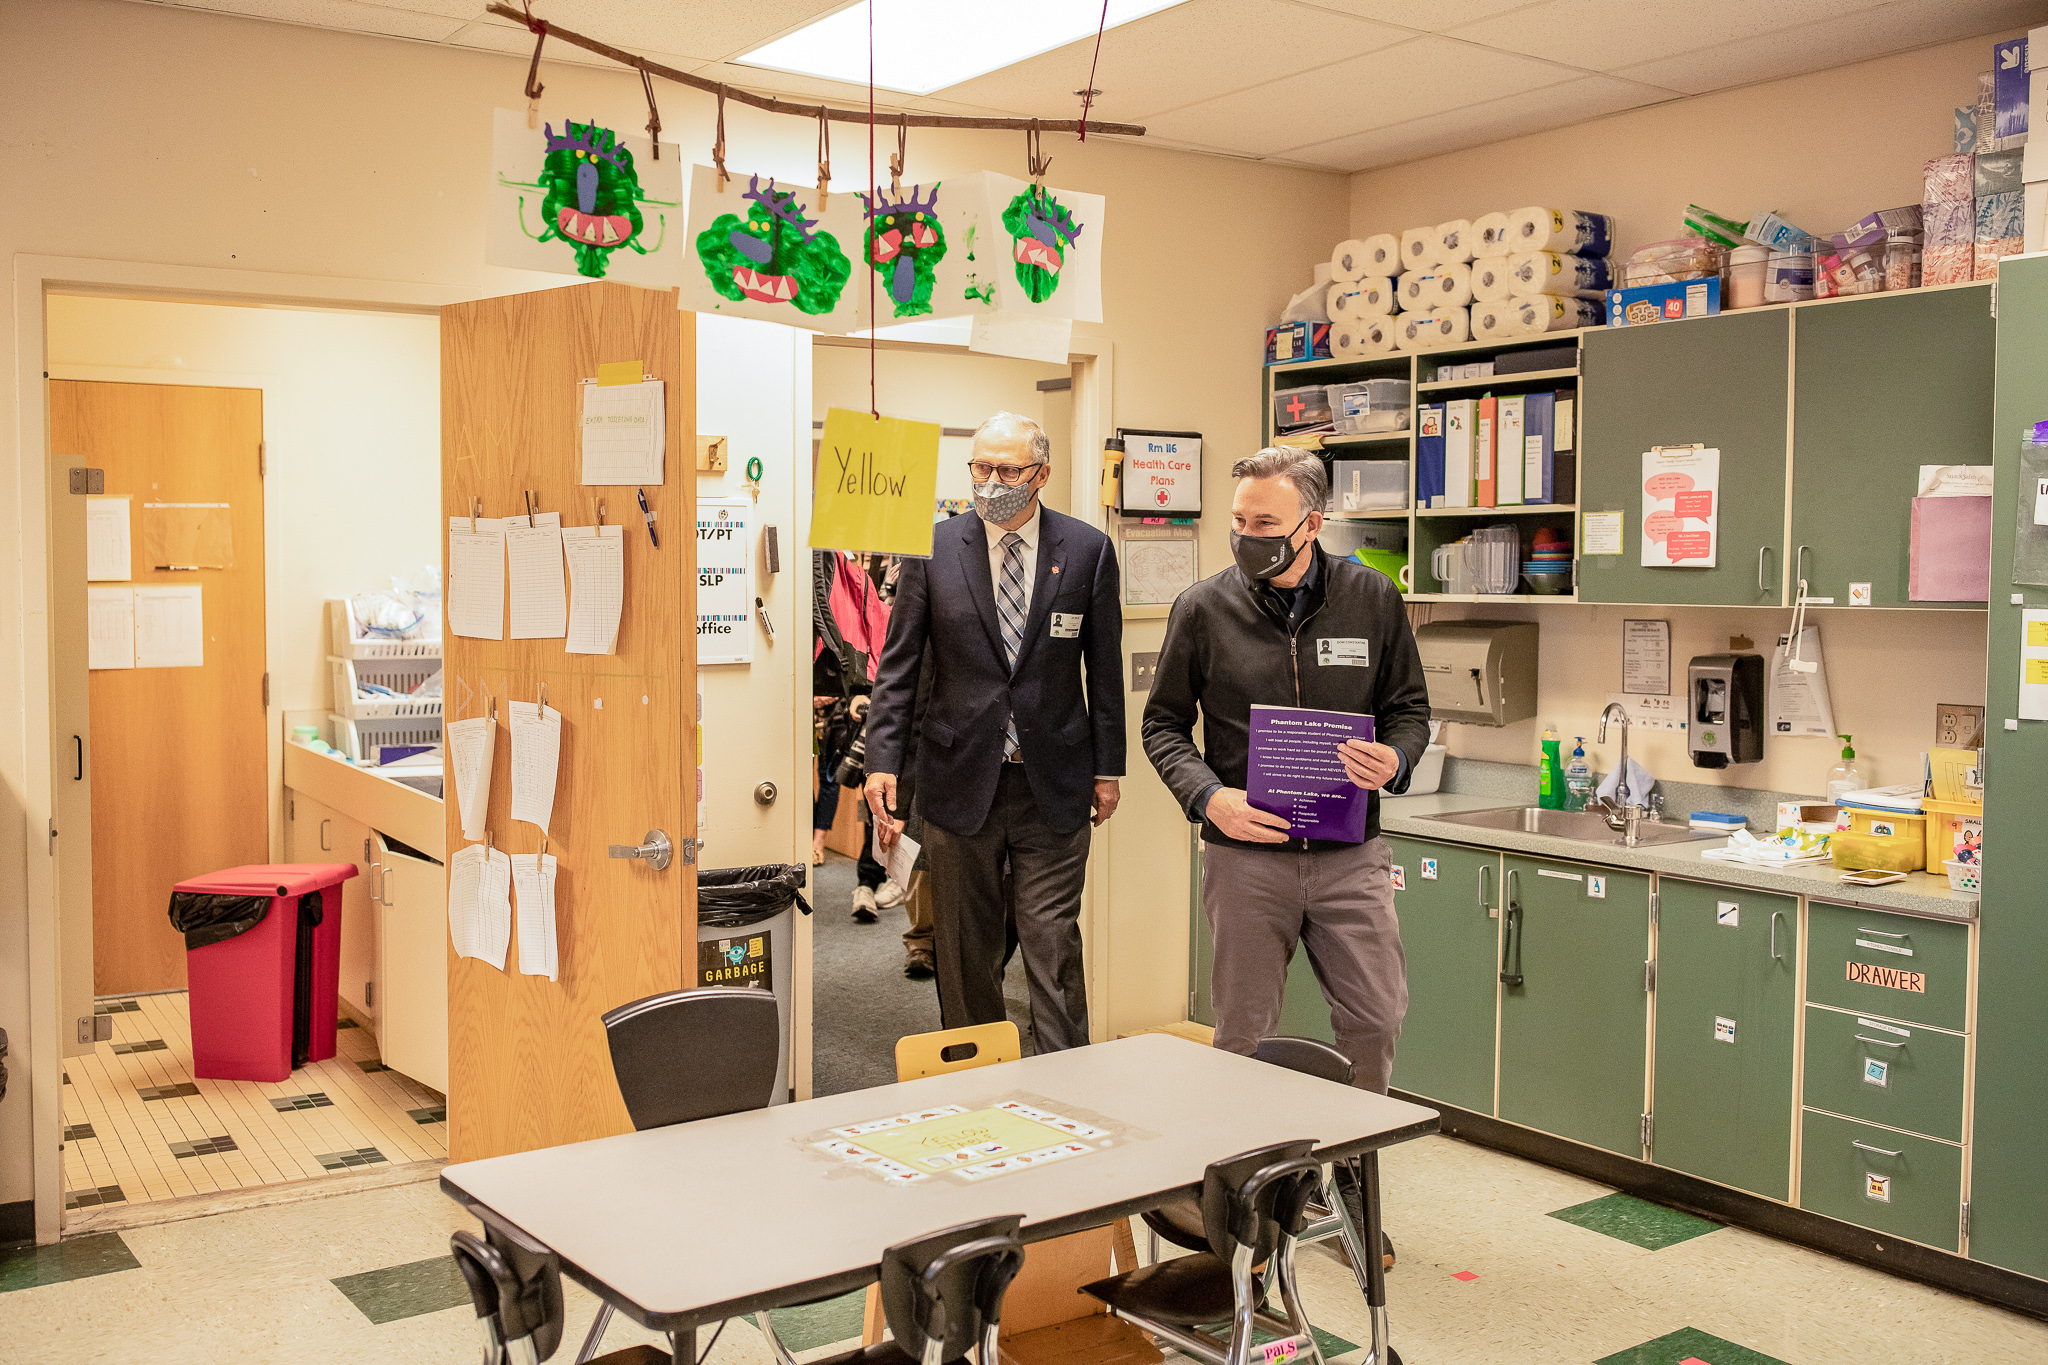 Governor Jay Inslee and King County Executive Dow Constantine visit a classroom